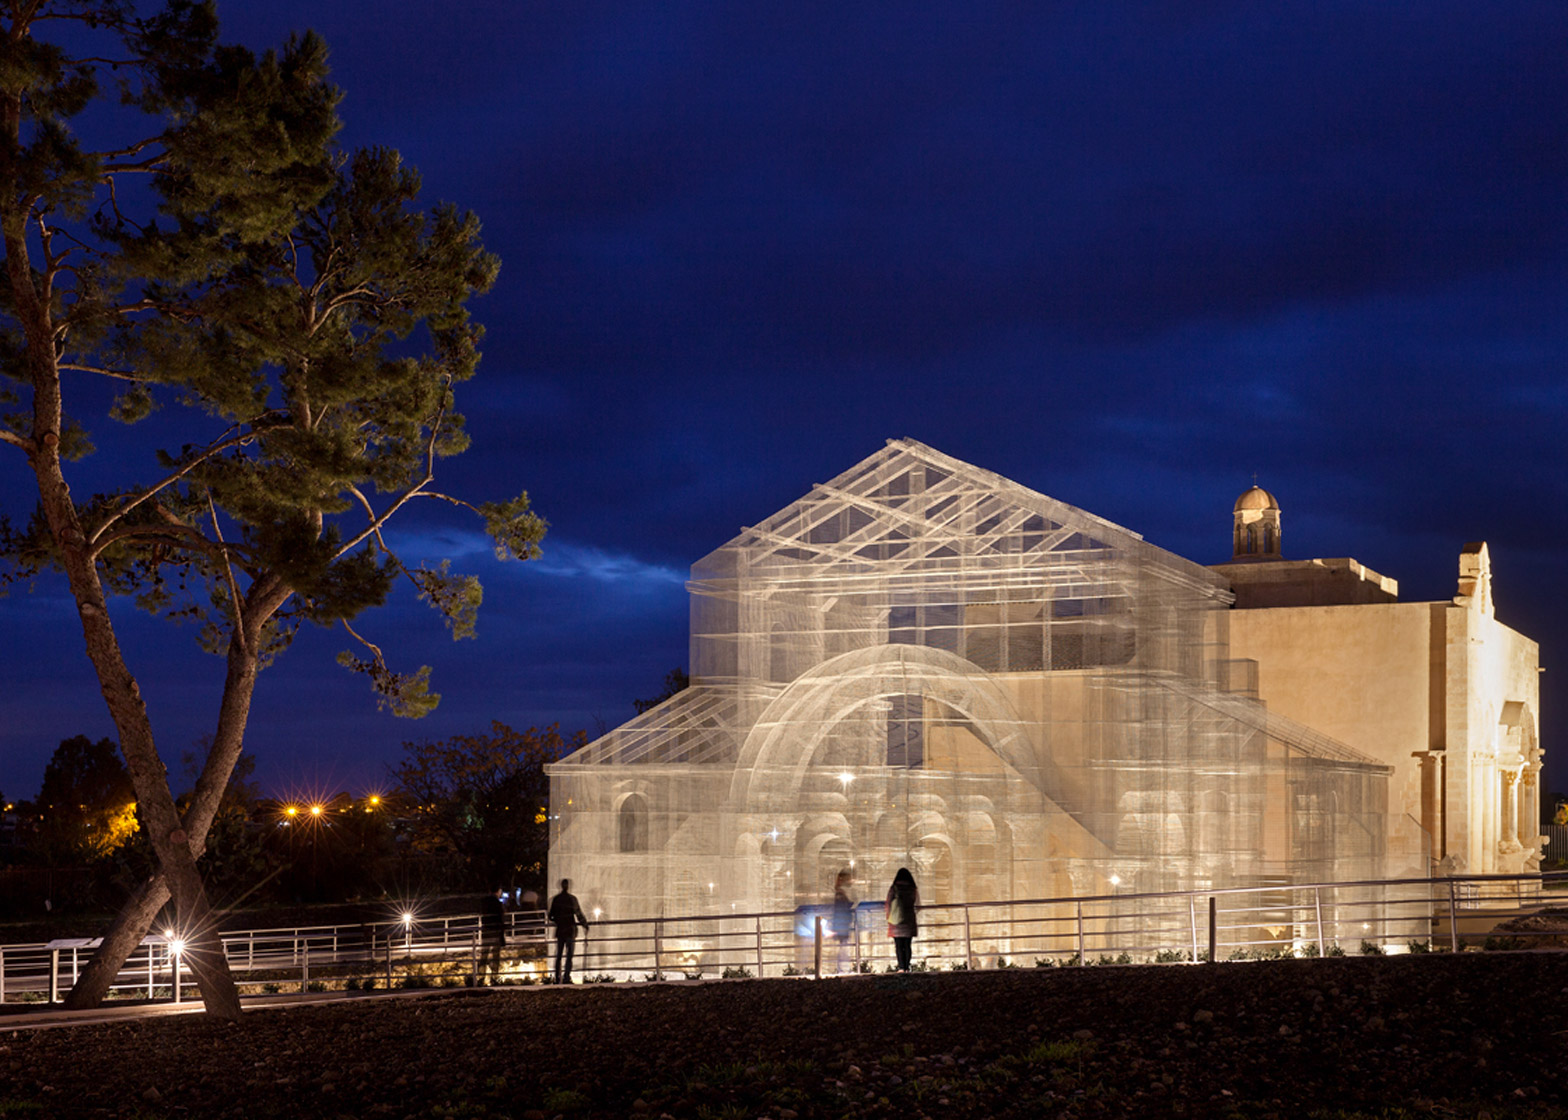 Wire installation by Edoardo Tresoldi